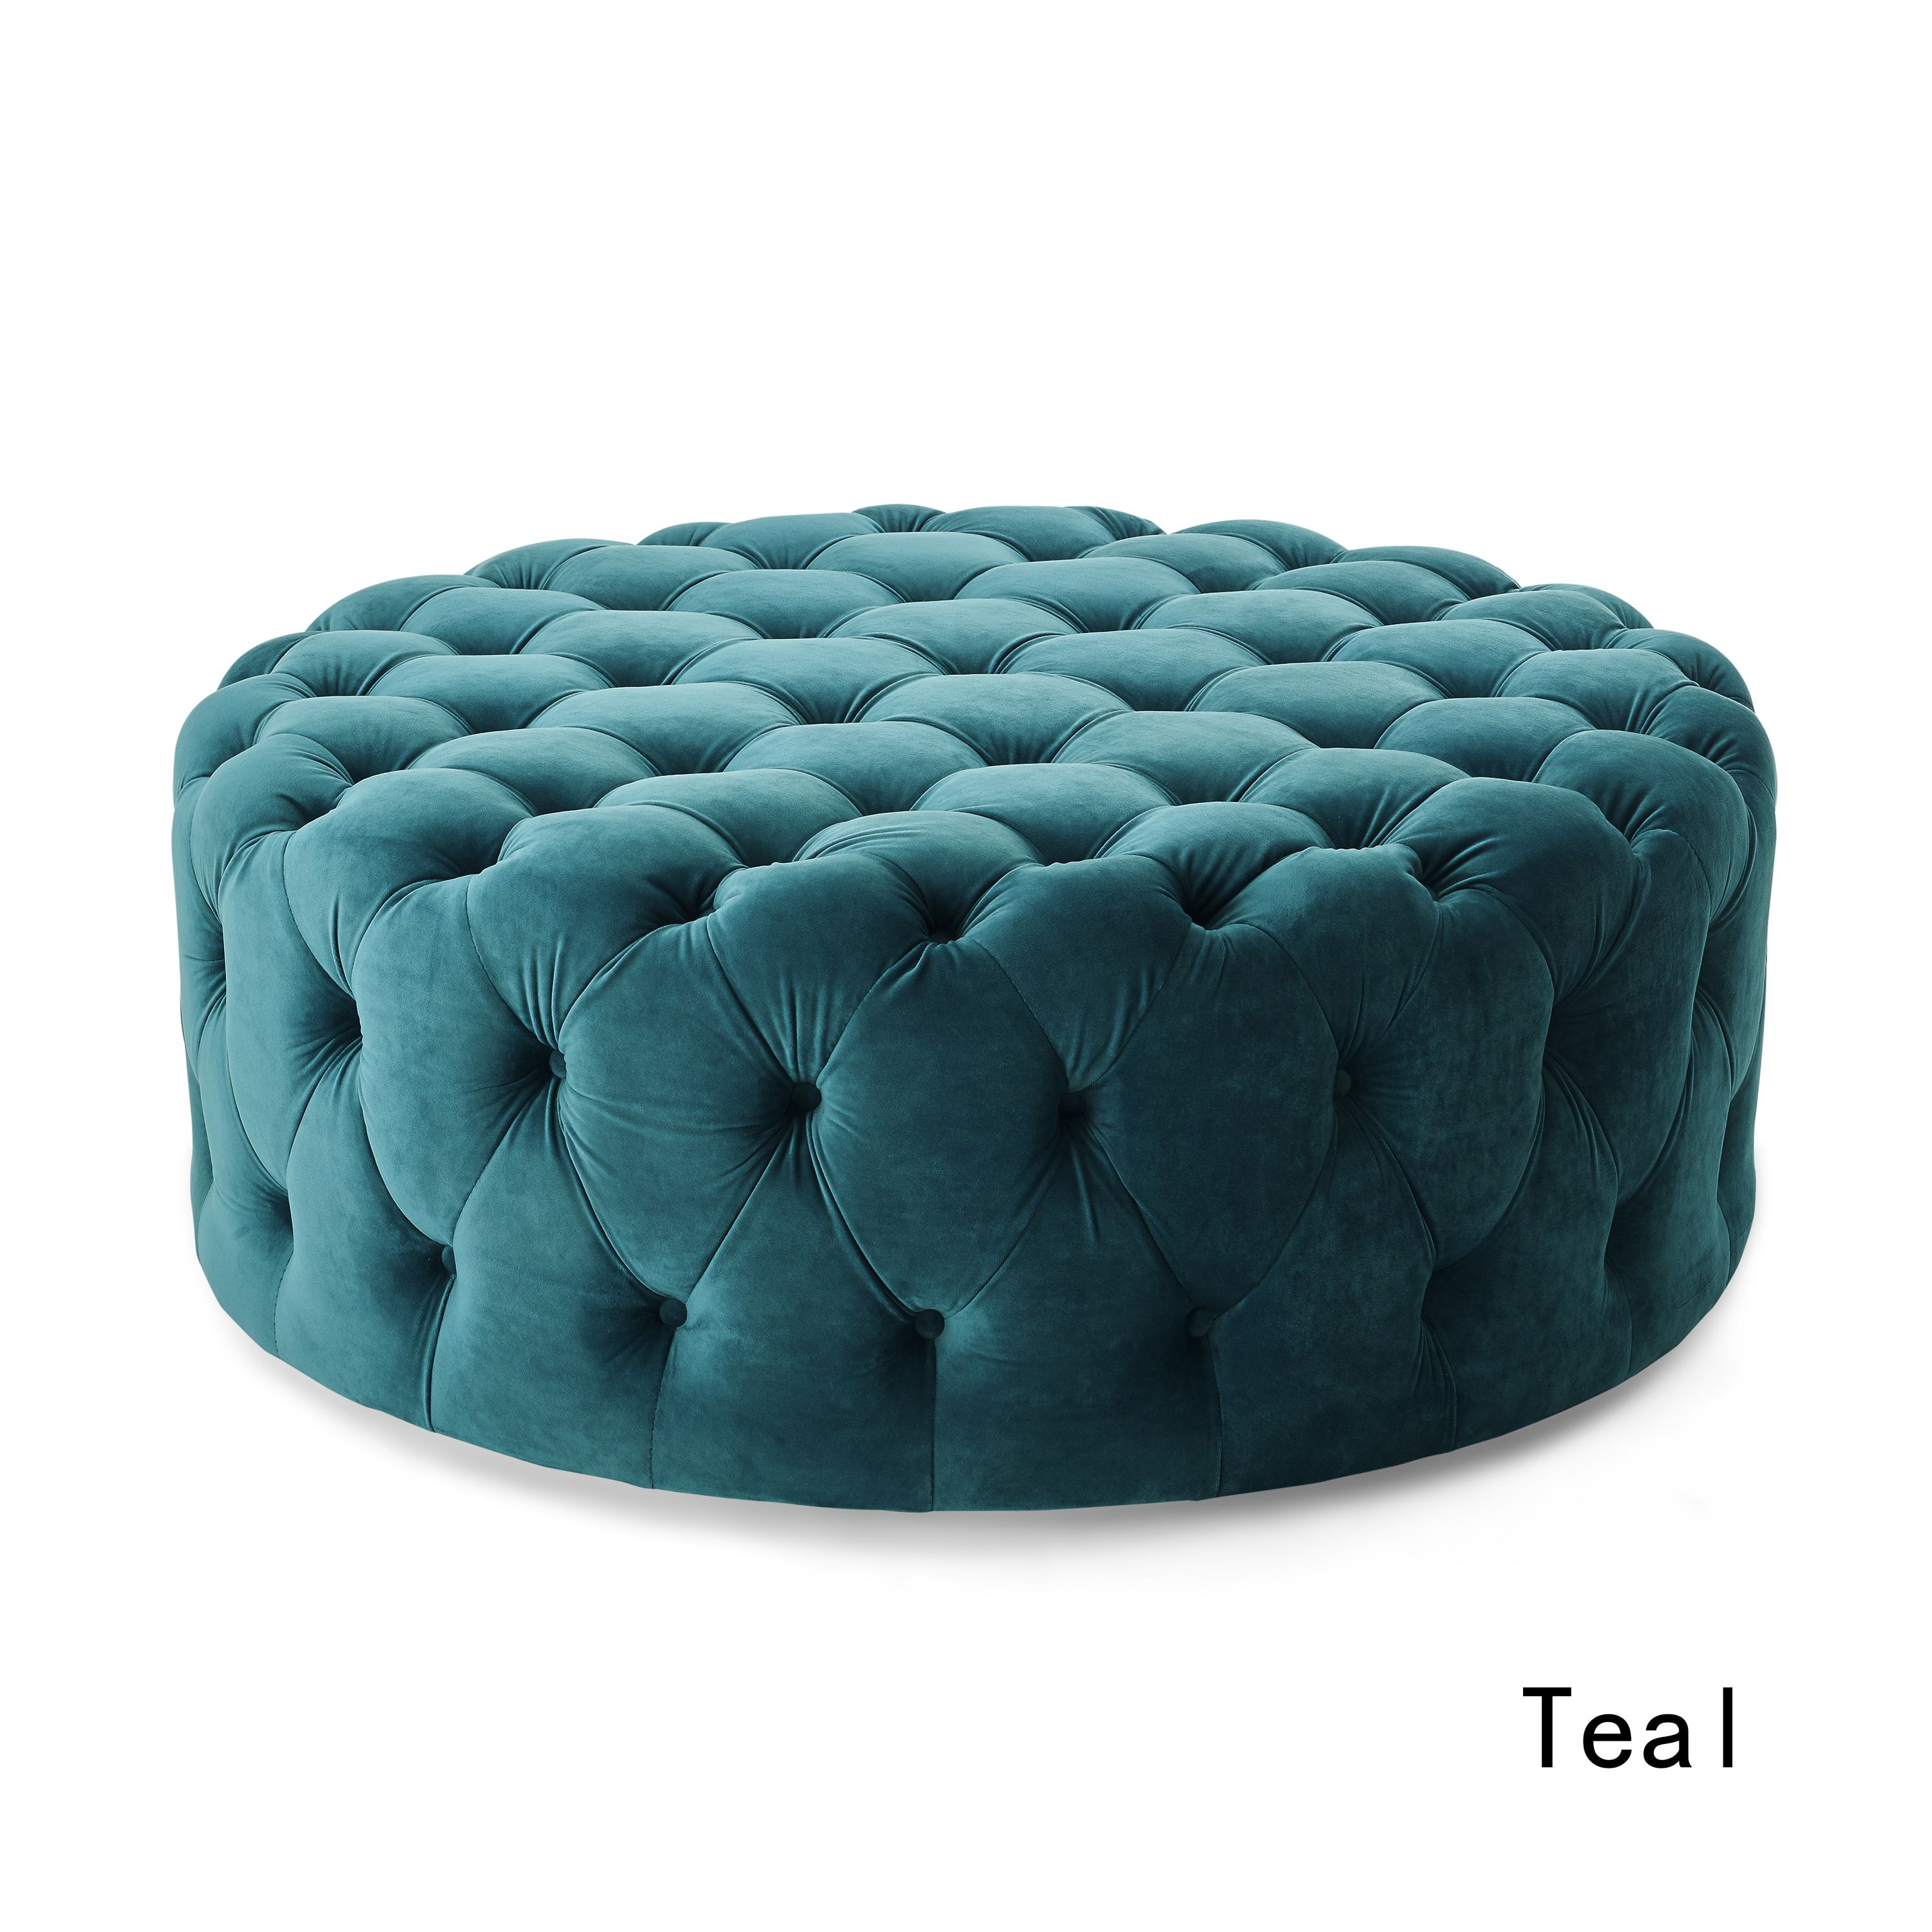 Sensational Corvus Padova Round Tufted Velvet Ottoman With Casters Teal Andrewgaddart Wooden Chair Designs For Living Room Andrewgaddartcom